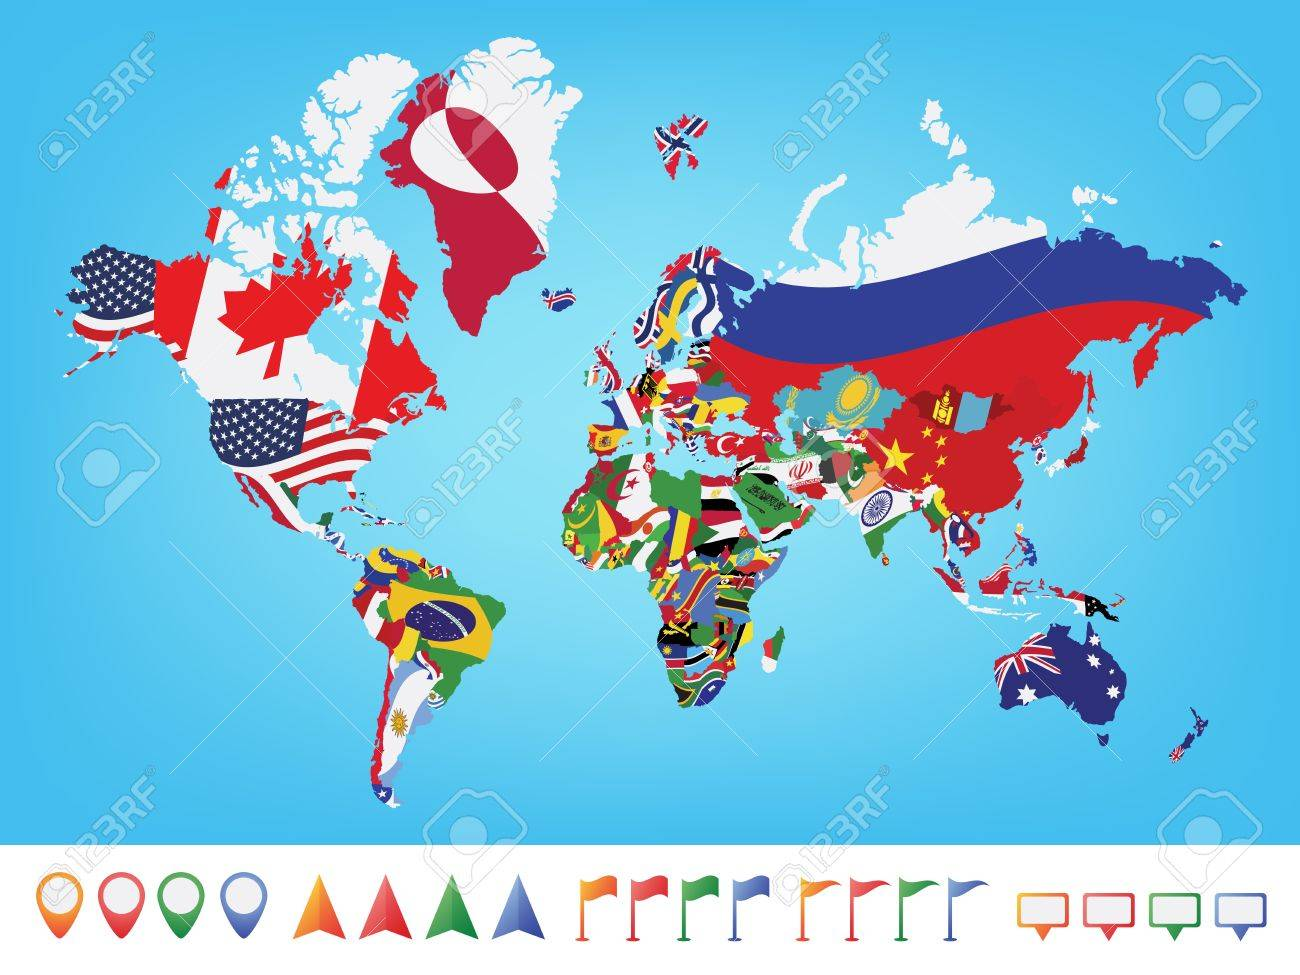 World map with flag on blue background royalty free cliparts vector world map with flag on blue background gumiabroncs Gallery